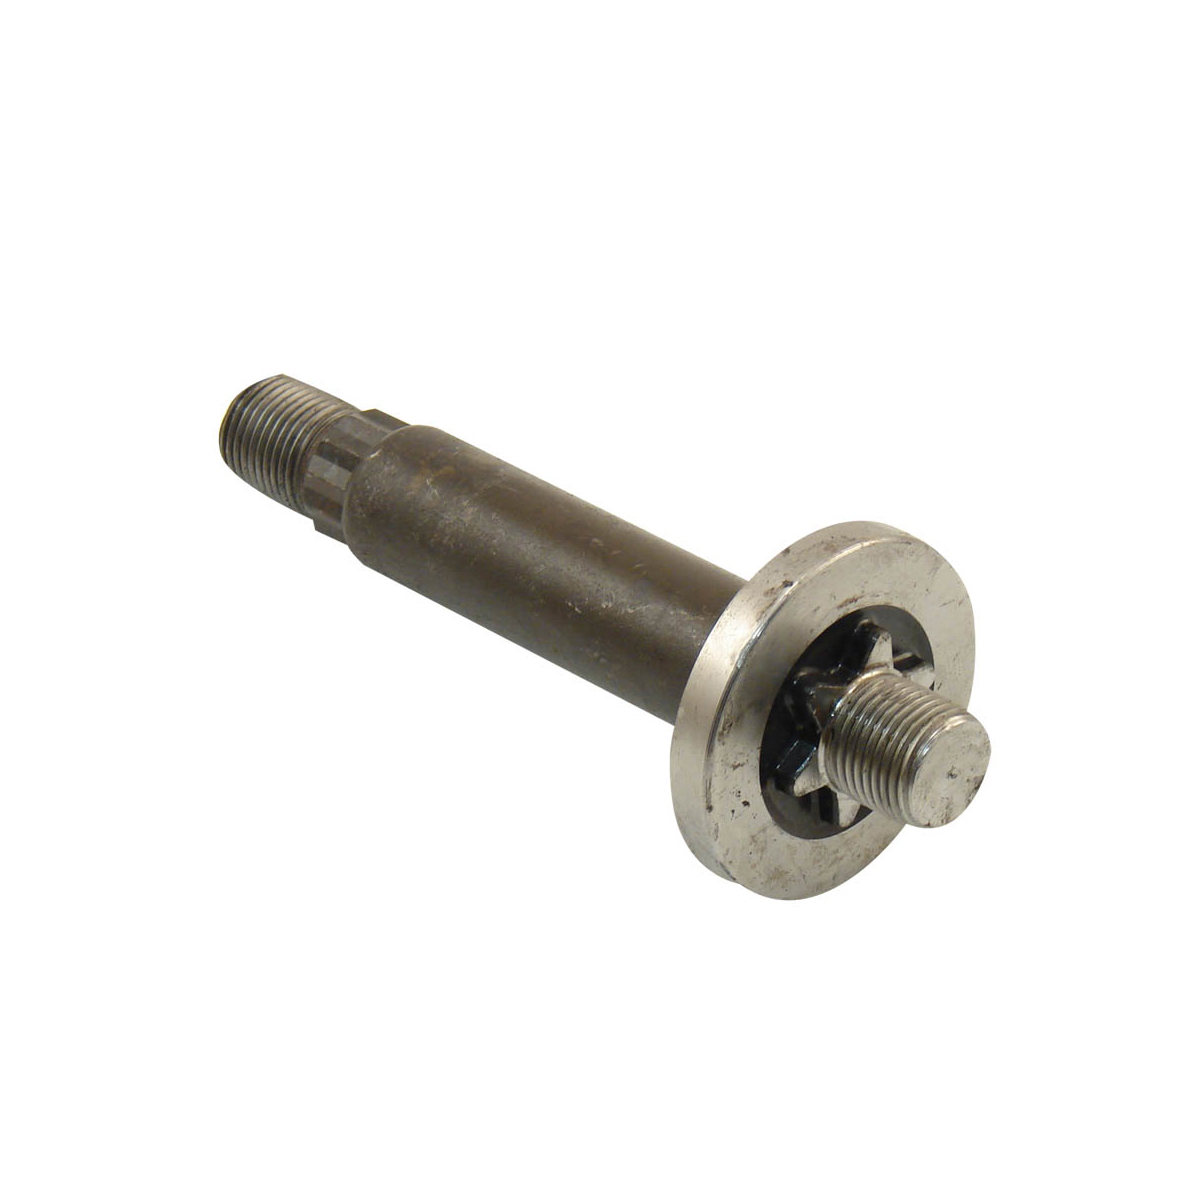 Blade Spindle Shaft (4.1250) 738-0976